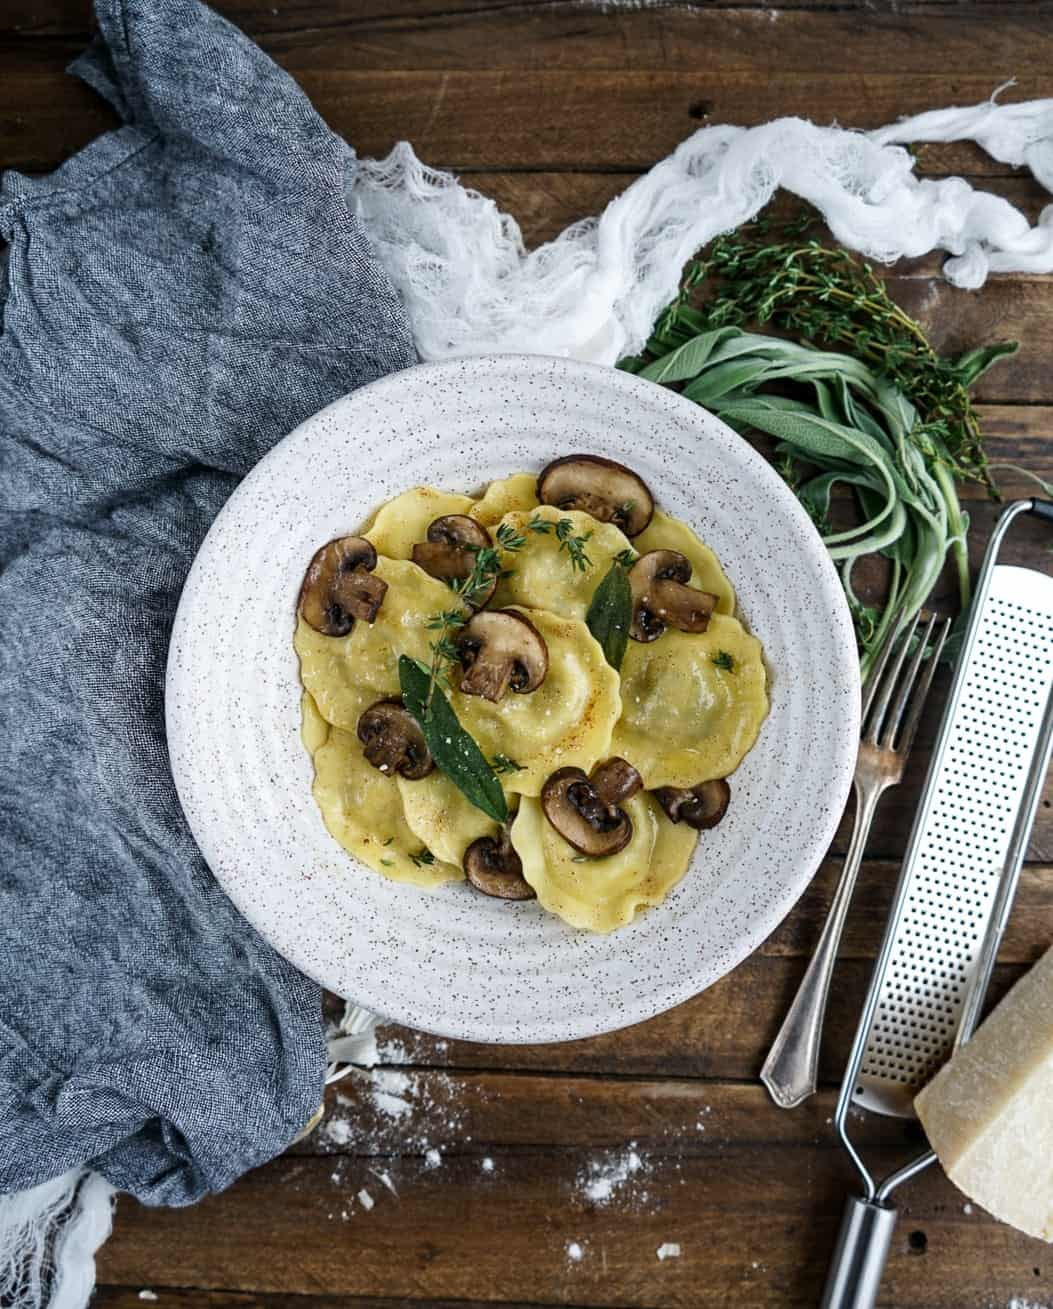 Mushroom Ravioli with Brown Butter Sauce plated in bowl